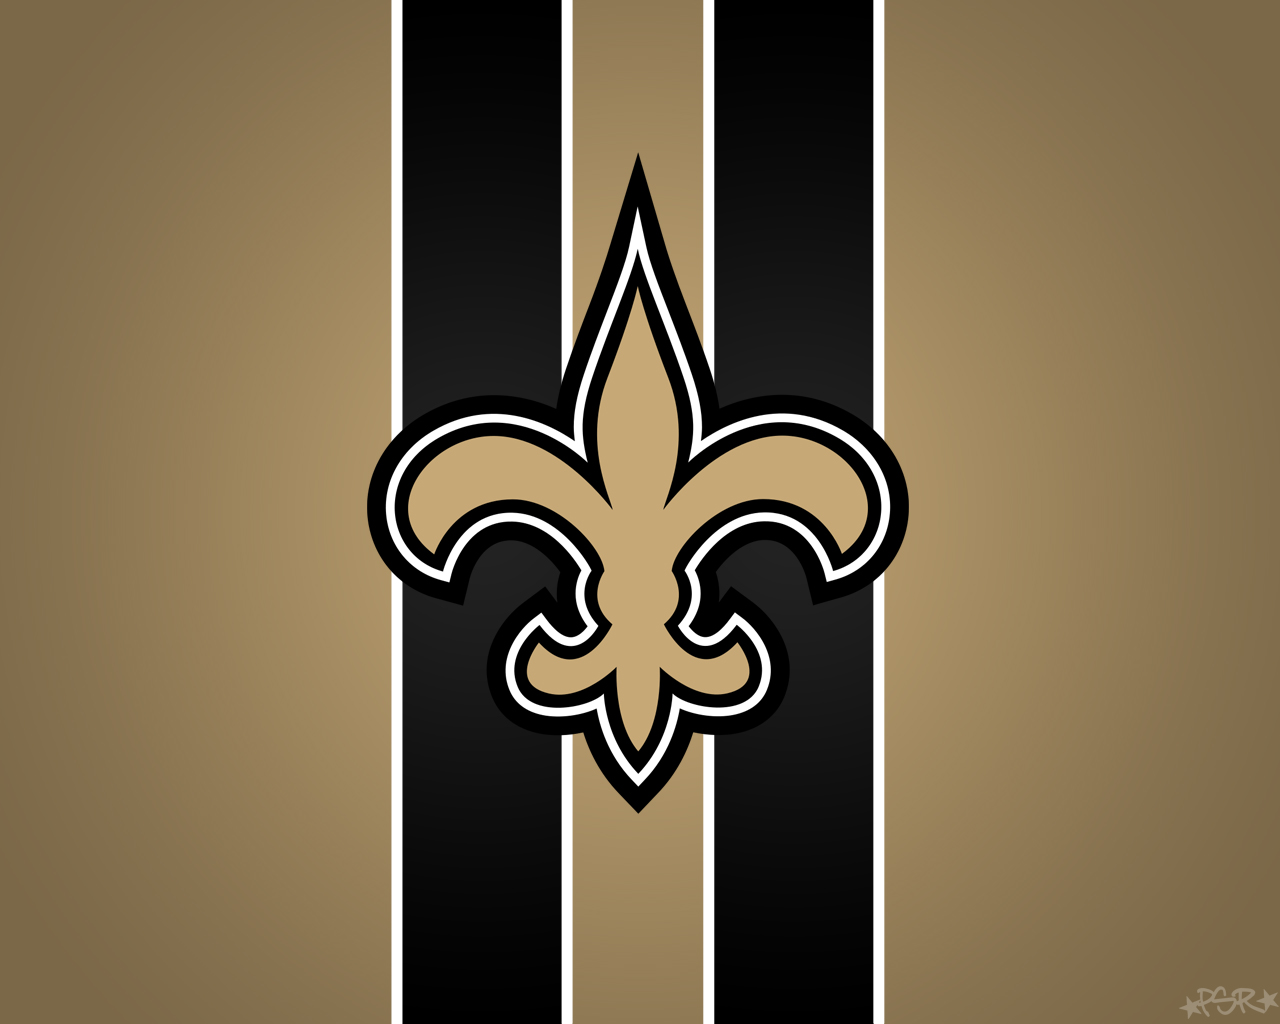 75 New Orlean Saints Wallpaper On Wallpapersafari